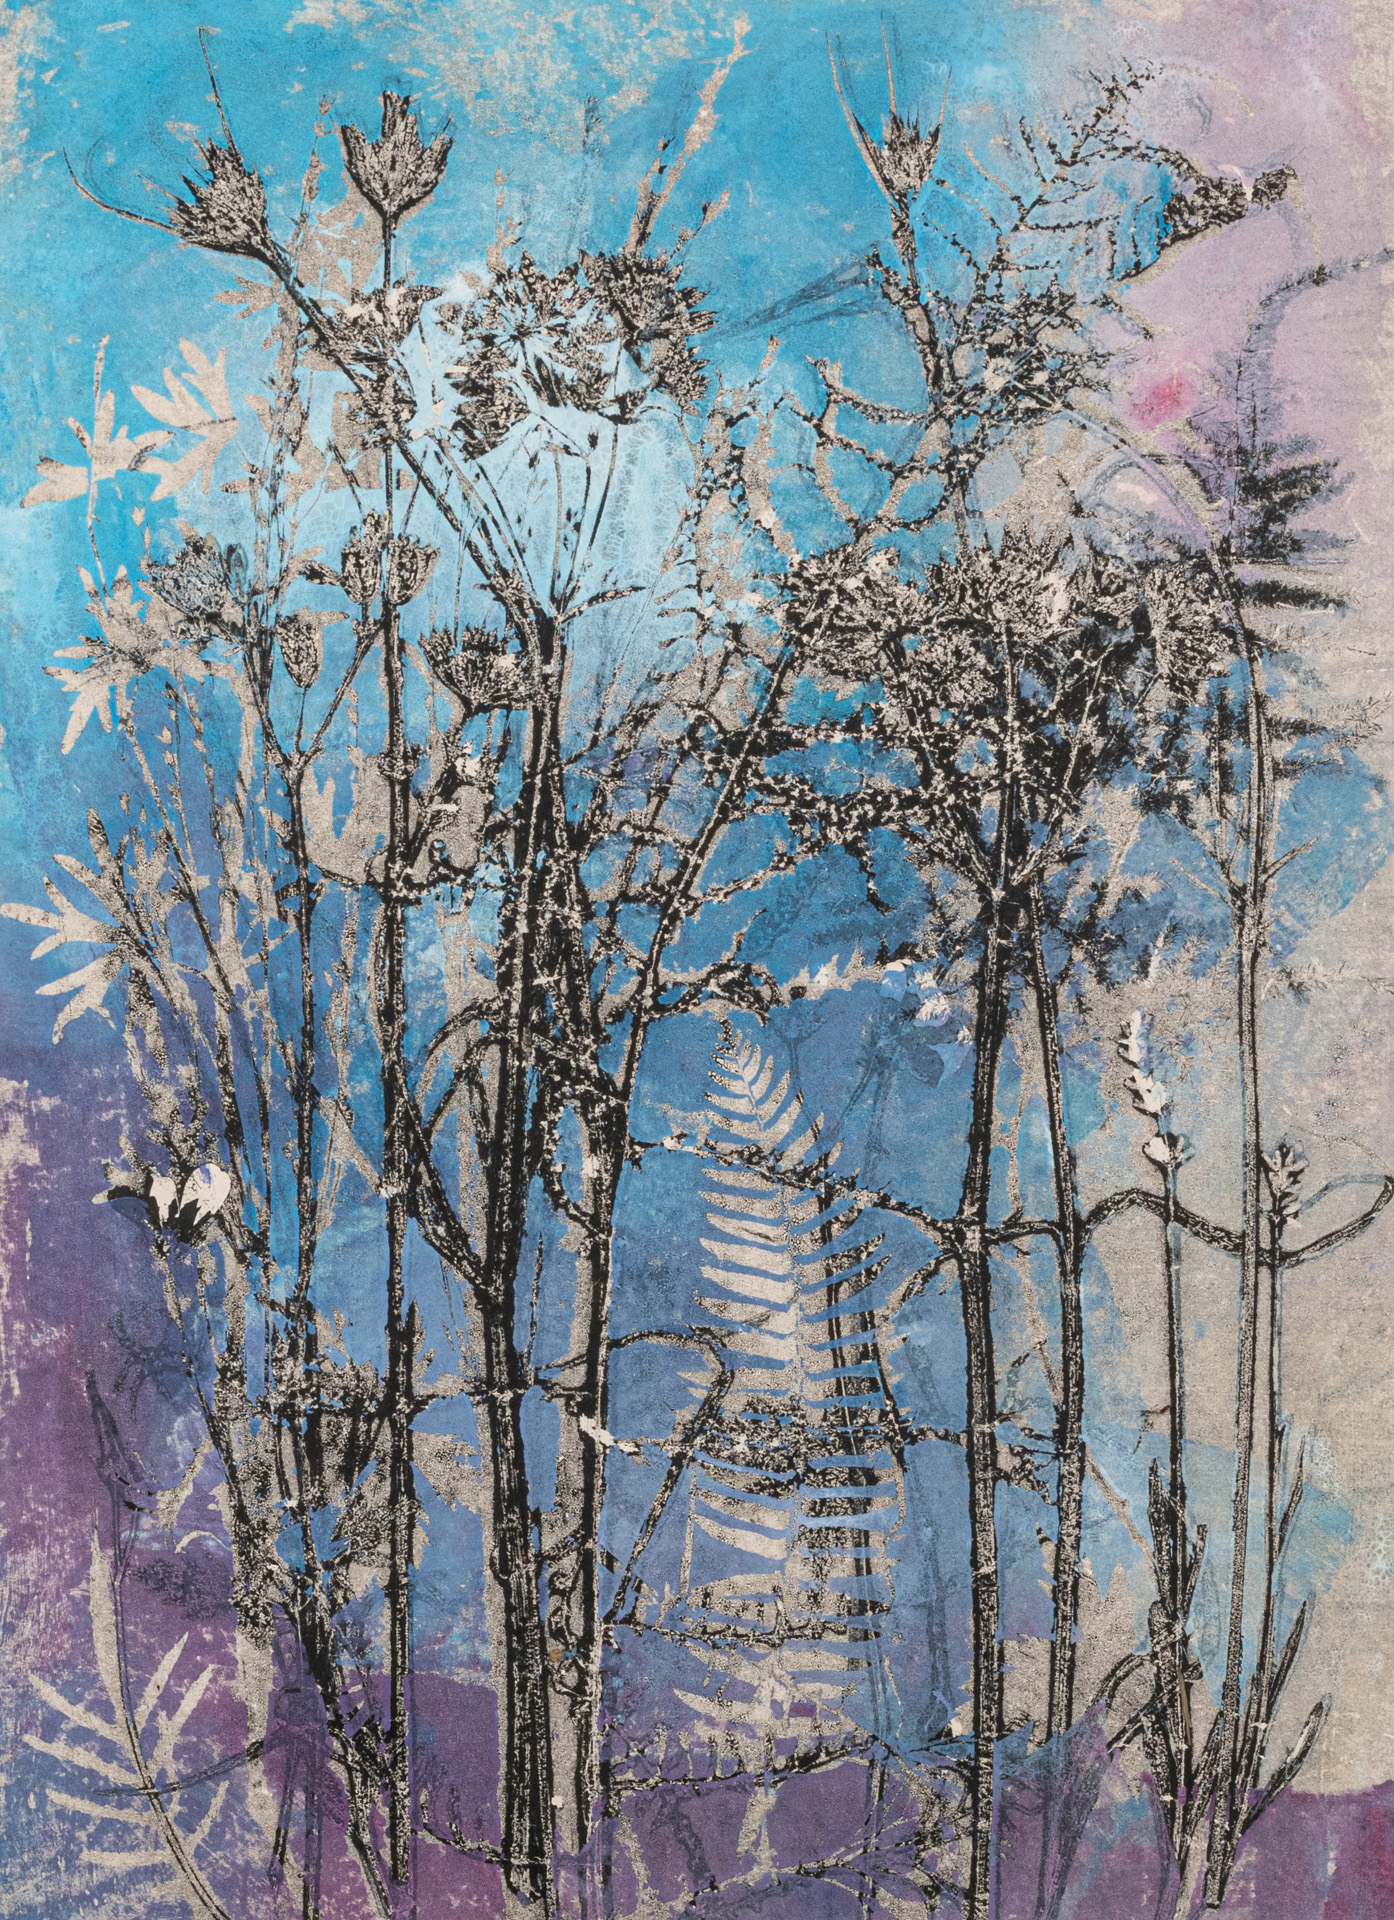 Summer English Country Garden by Stef Mitchell, Monotype